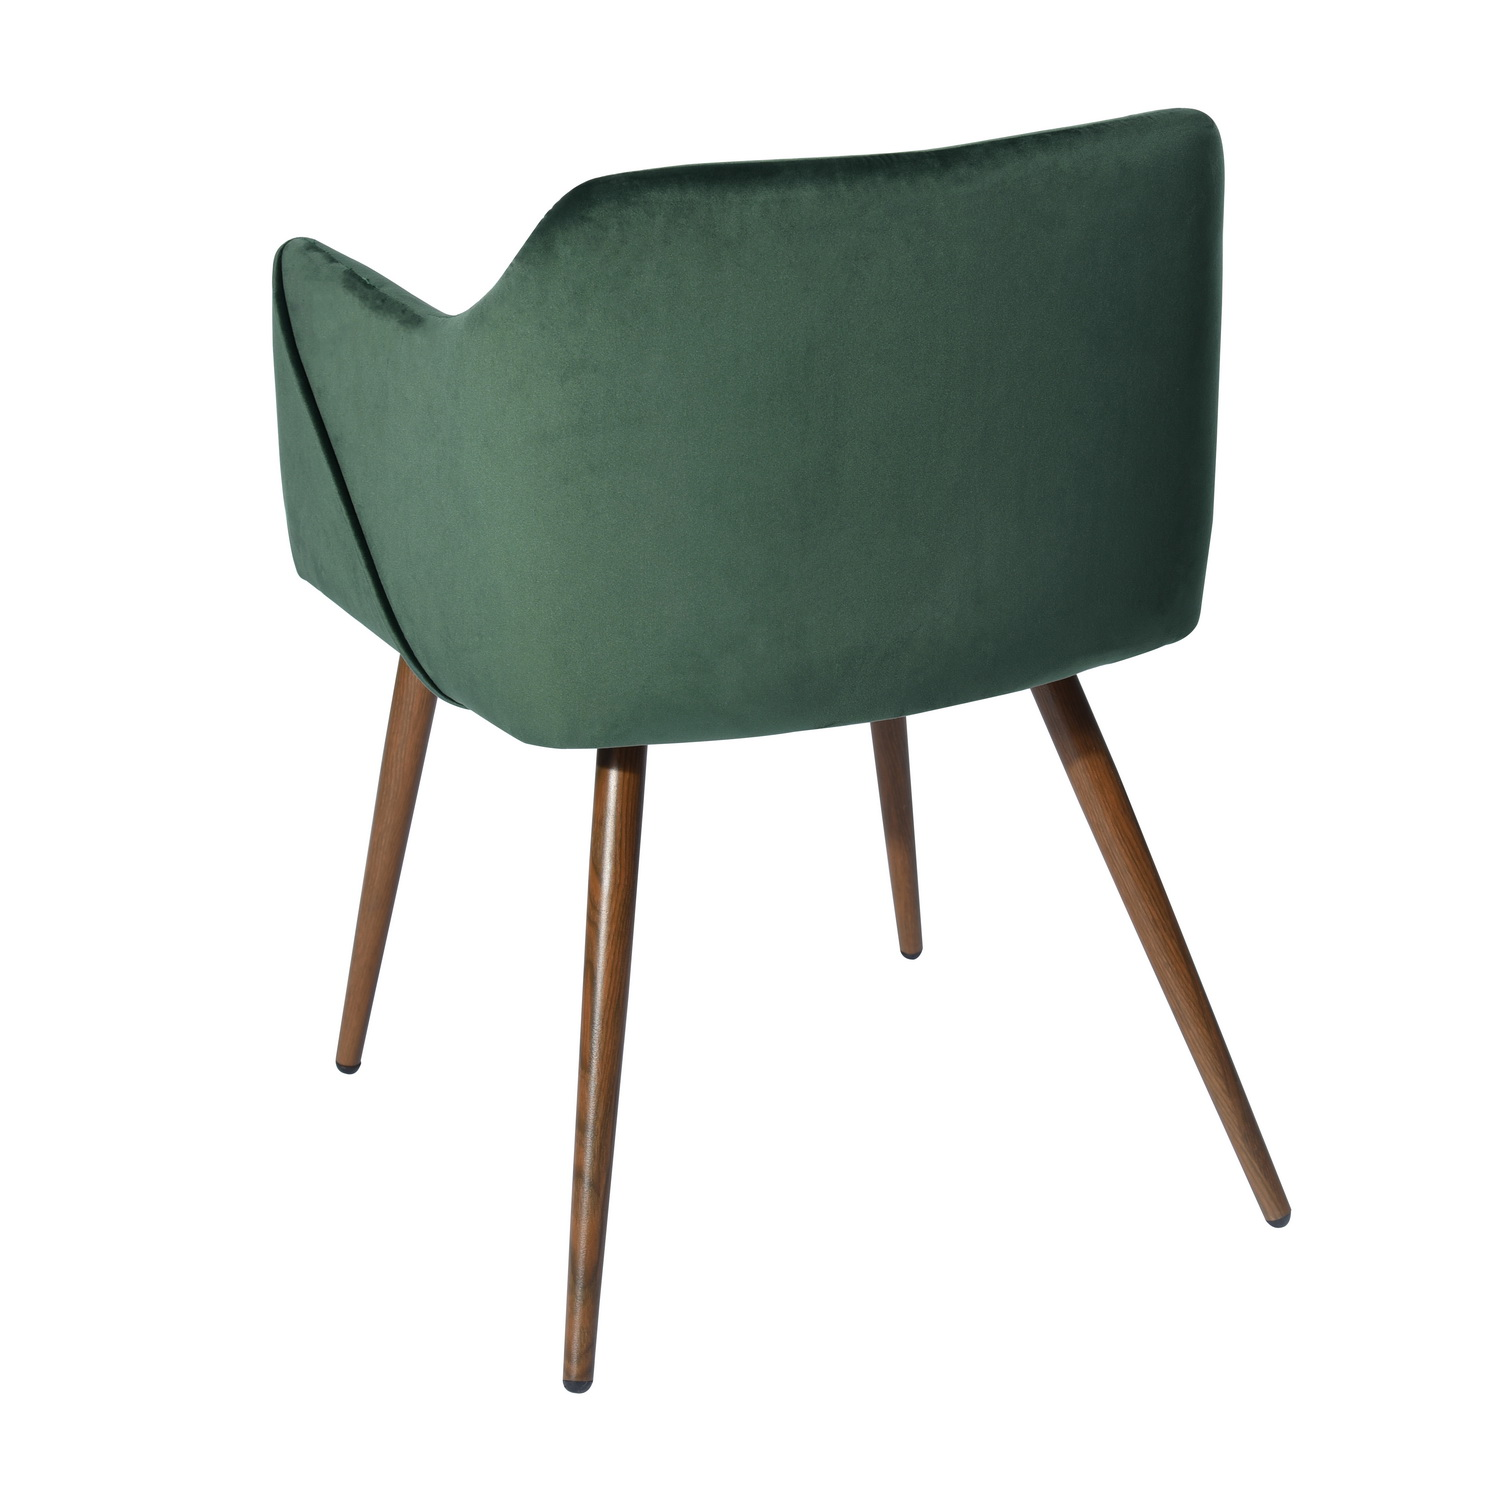 Sessel Up 2000 1 2 4 Retro Sessel Polstersessel Samt Loungesessel